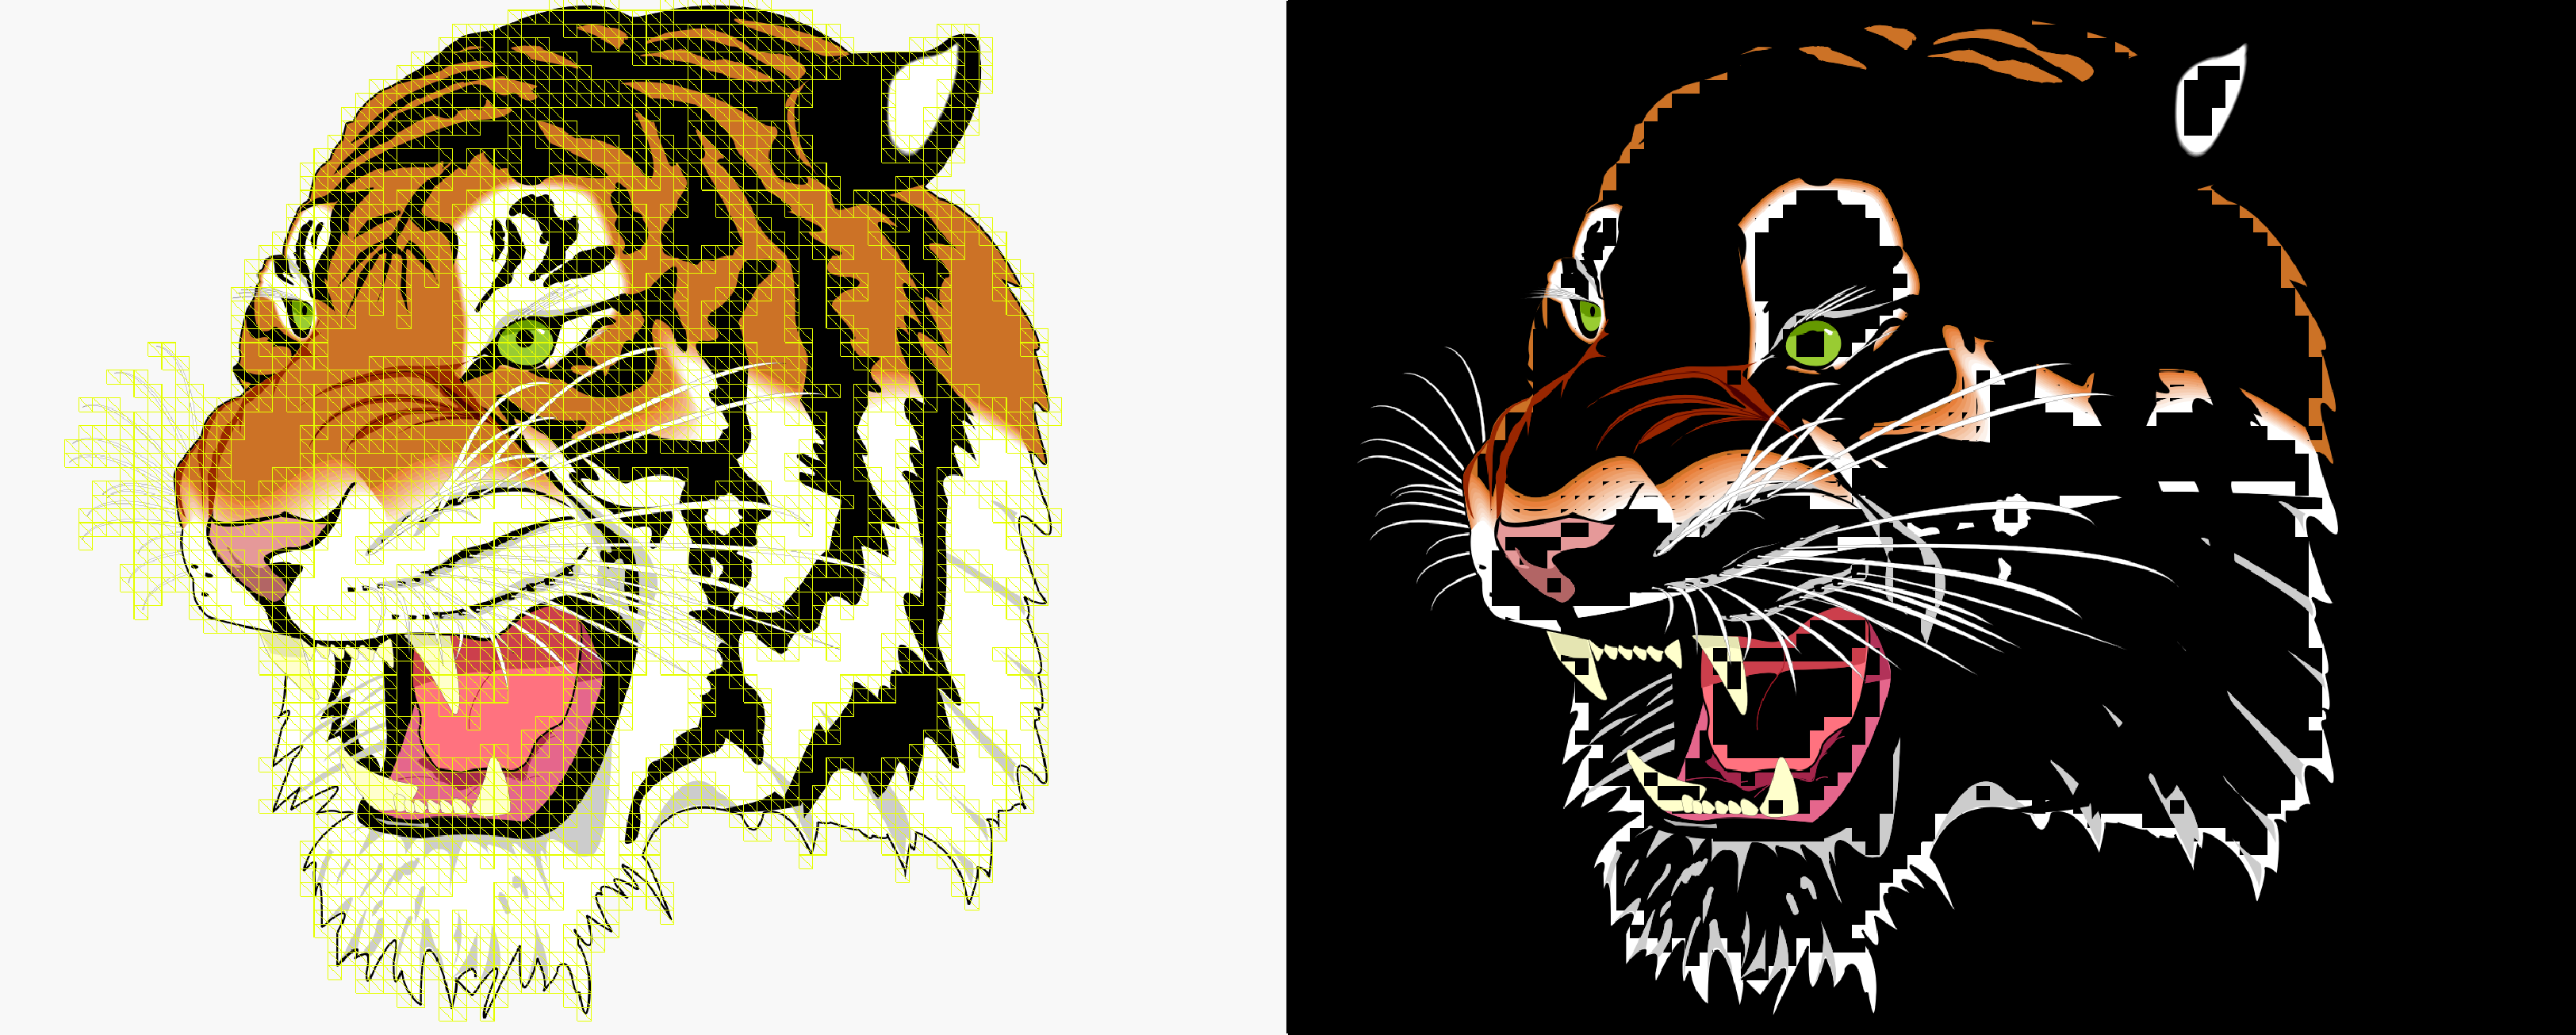 How Pathfinder renders the GhostScript Tiger